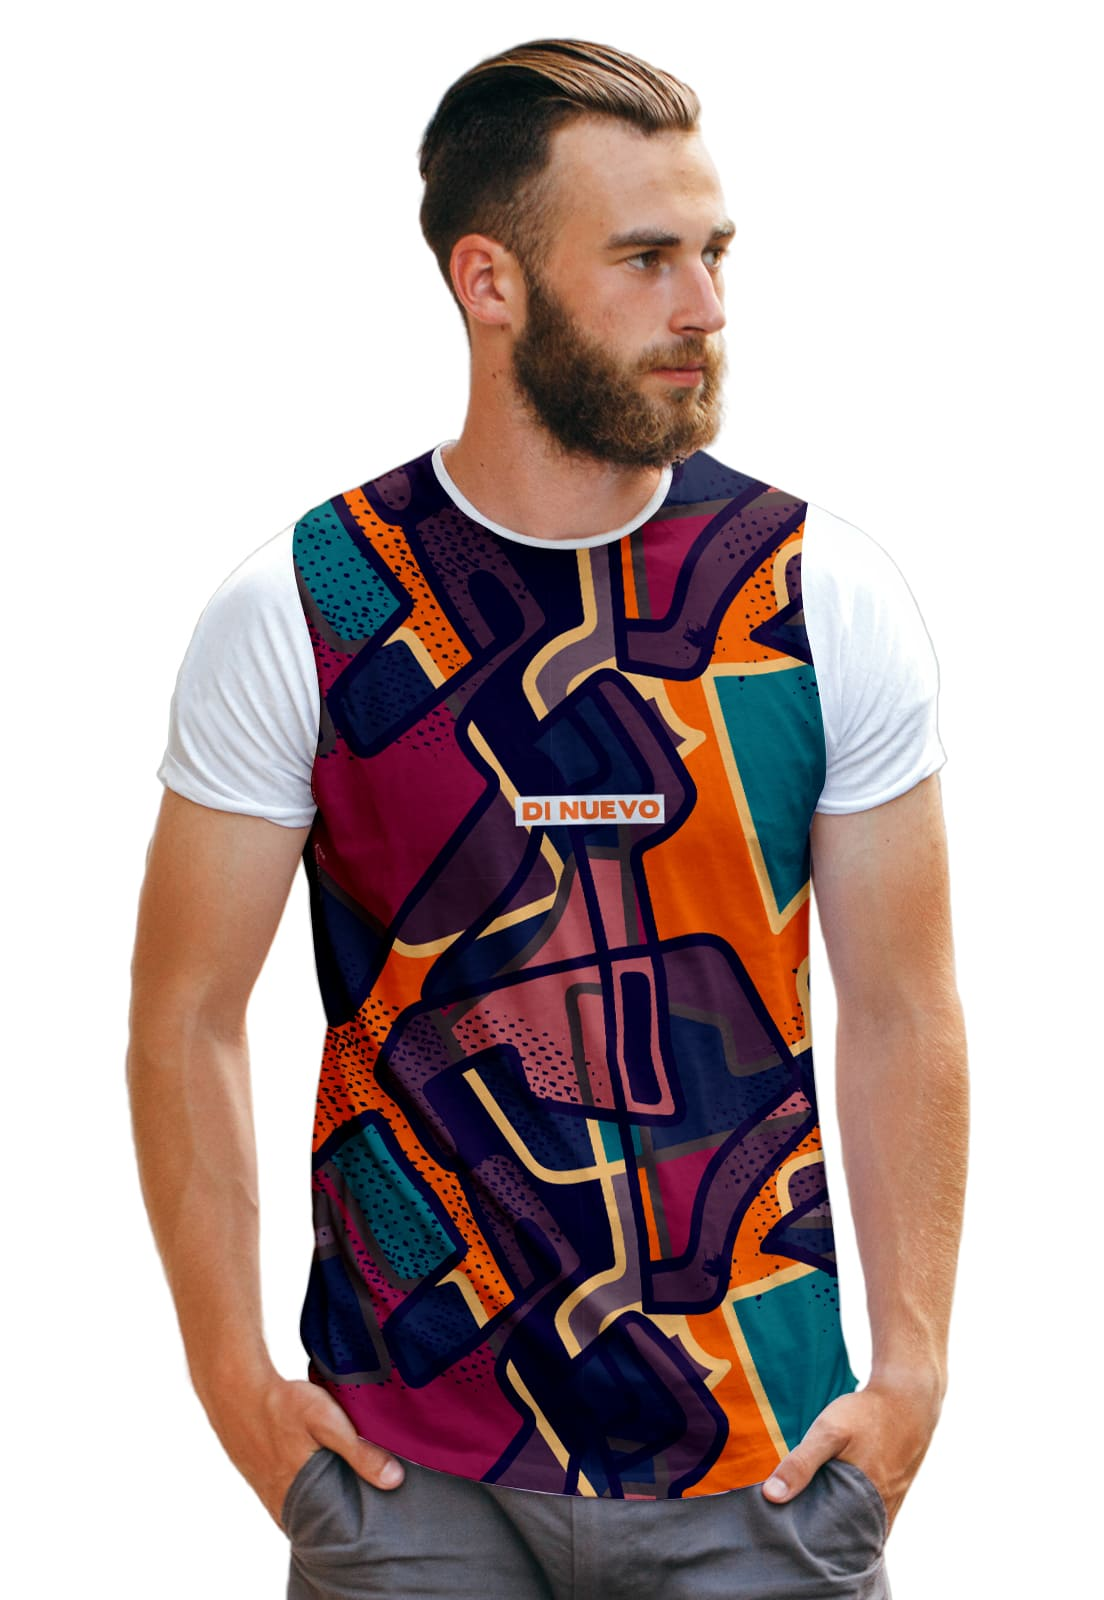 Camiseta Picasso Art Abstract Colorful Di Nuevo